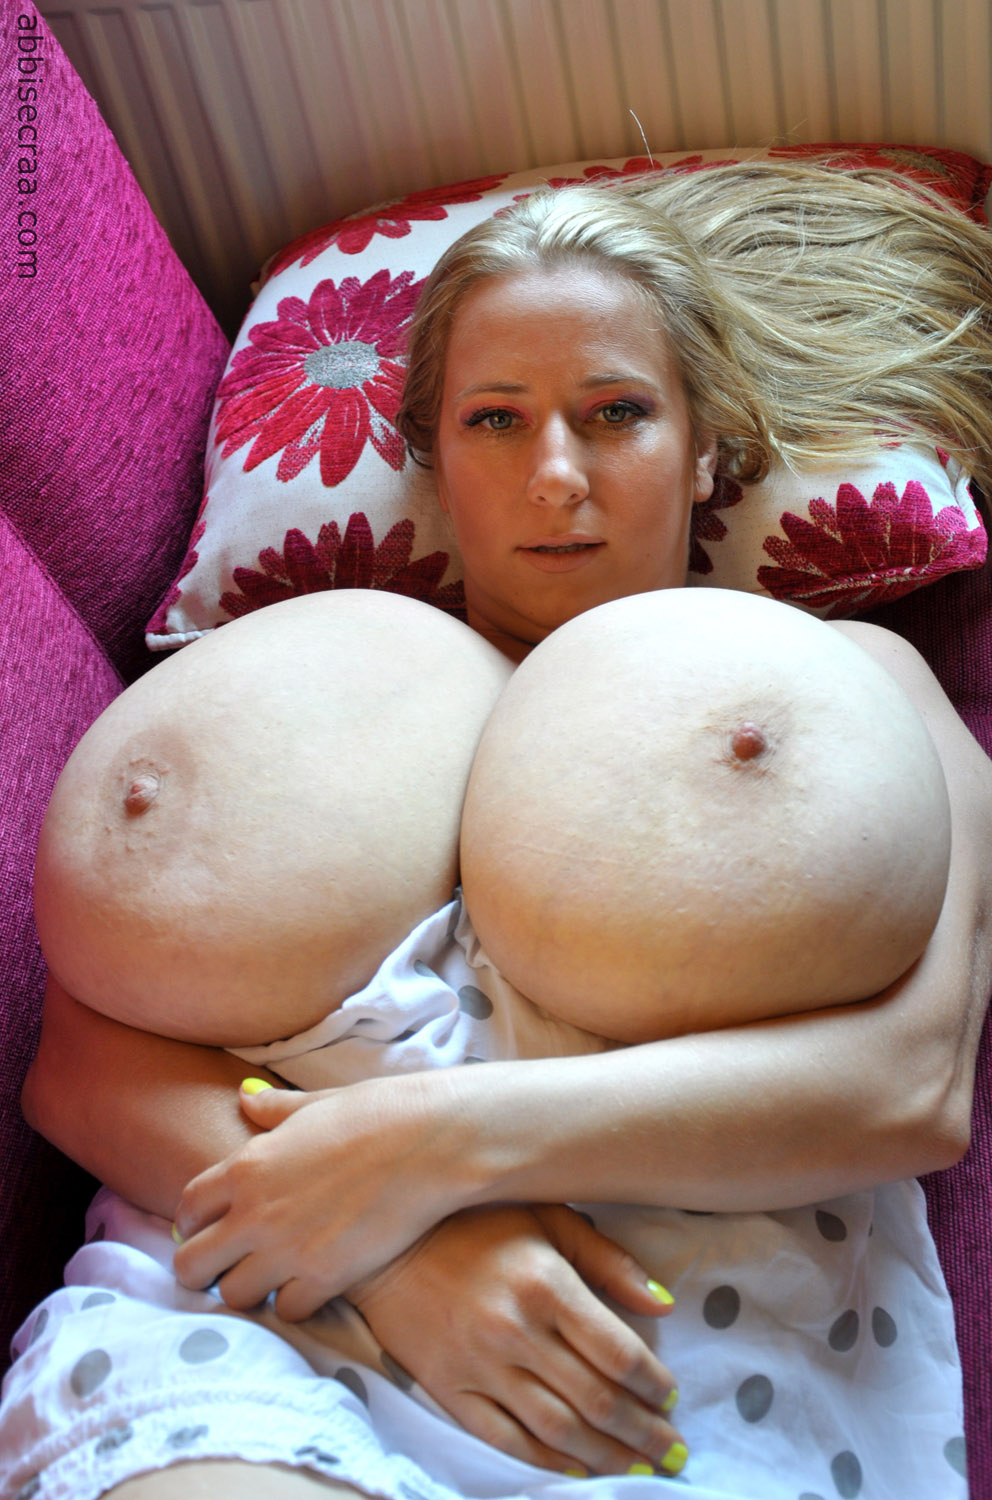 Big tits laying down nude